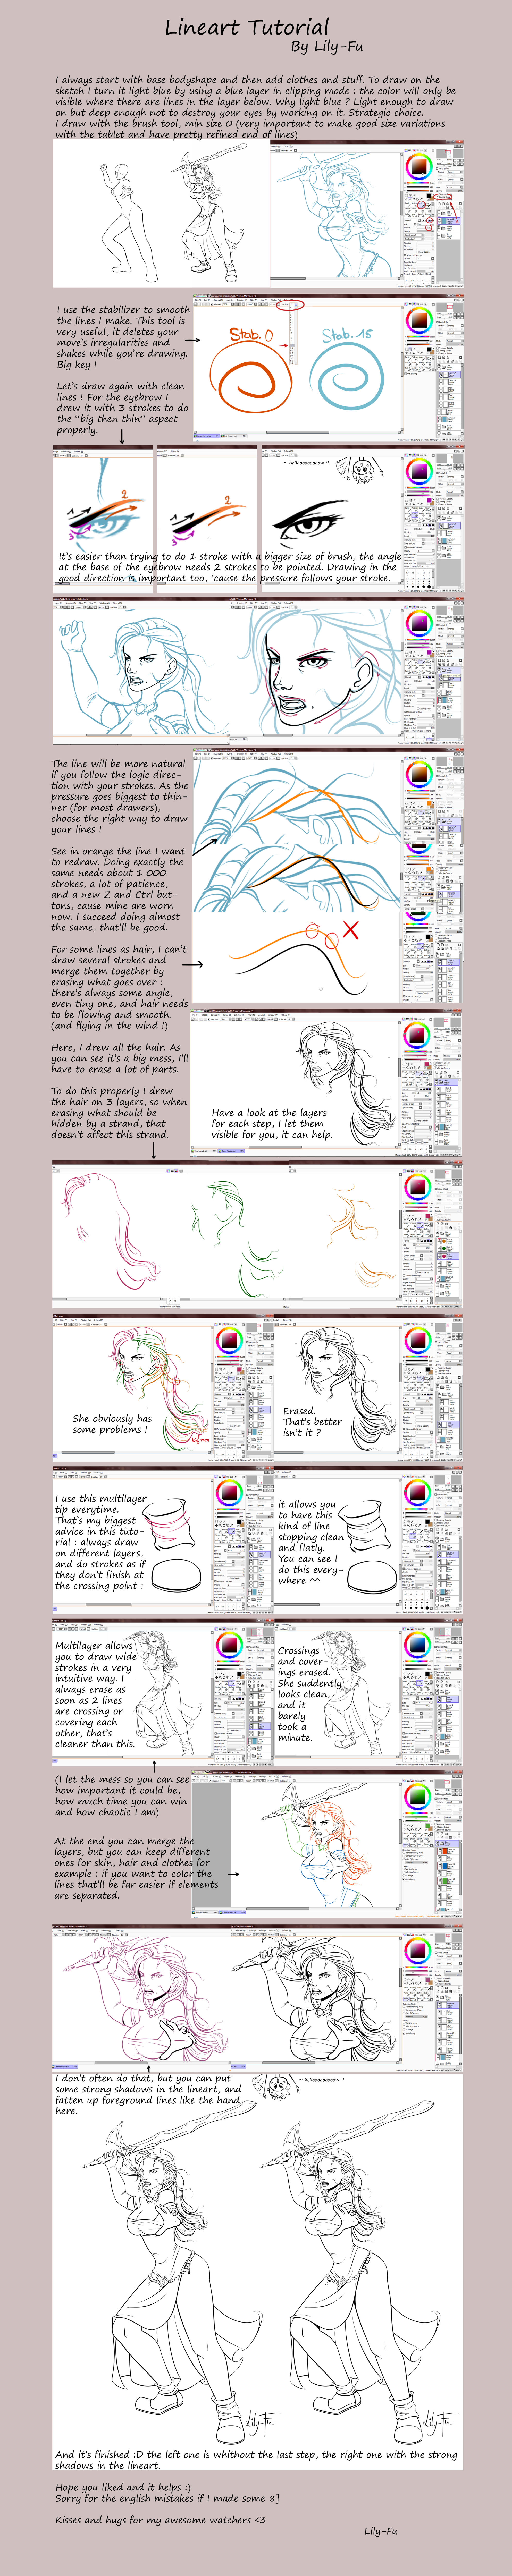 Digital Painting Without Lineart : Tutorial lineart on paint tool sai by lily fu deviantart